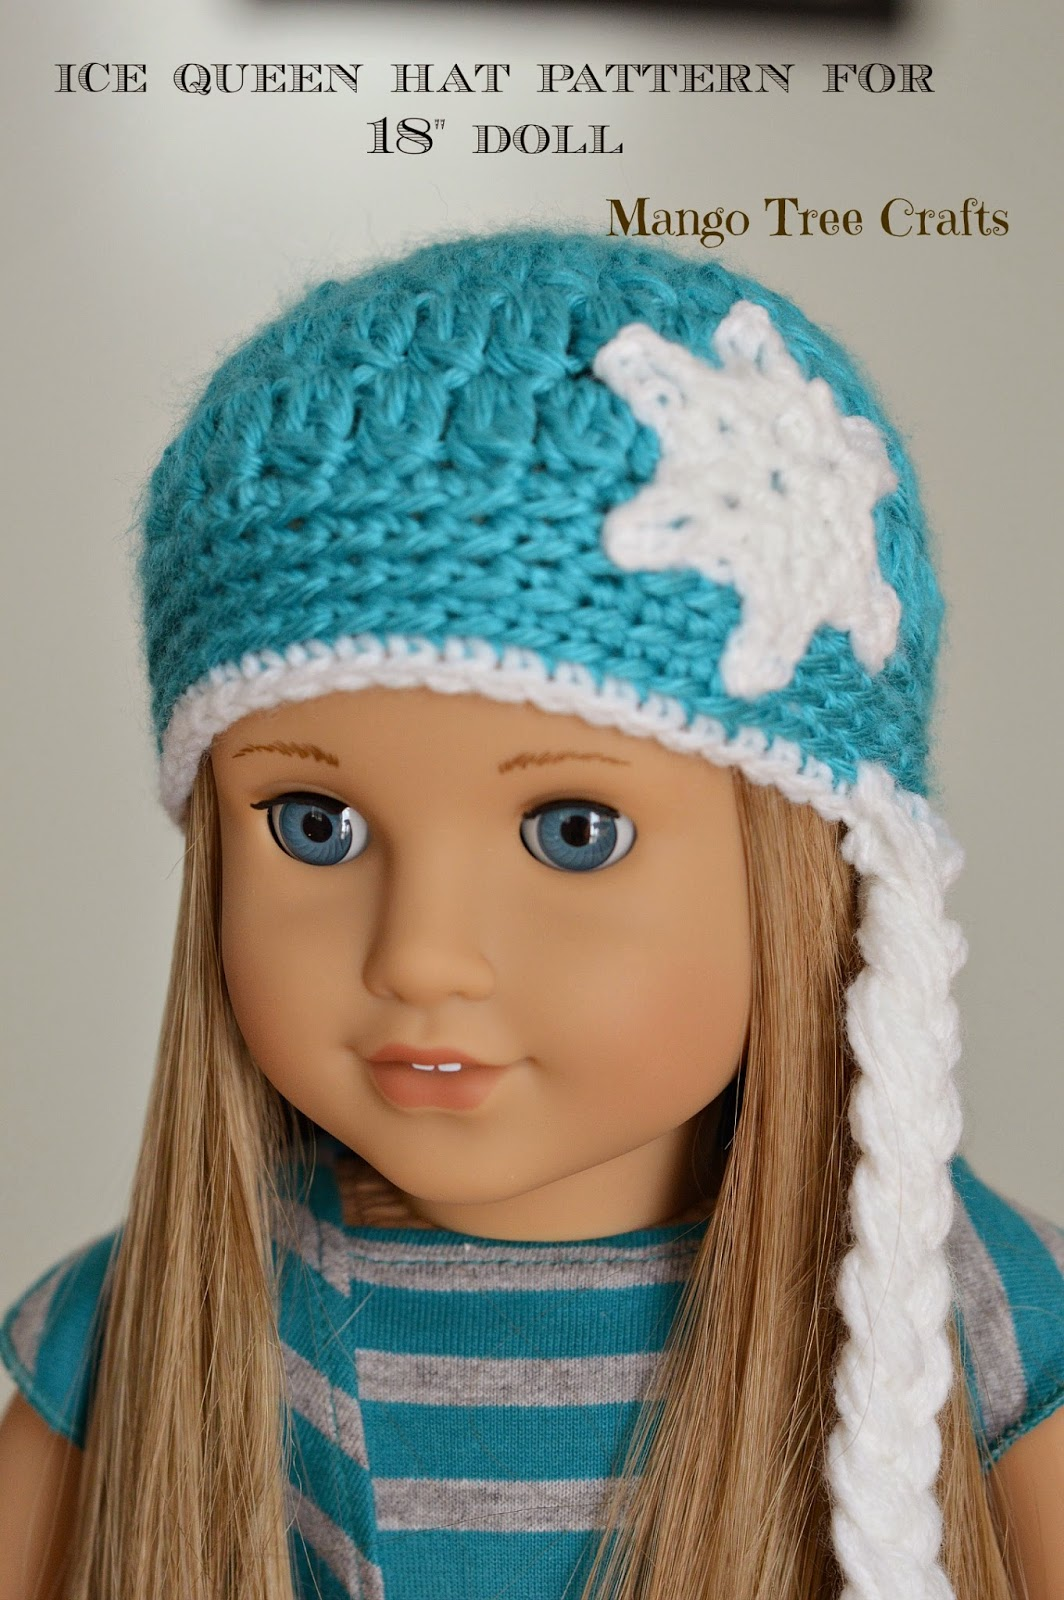 Crochet Hat Pattern American Girl Doll : Mango Tree Crafts: Ice Queen Crochet Hat Pattern for 18 ...